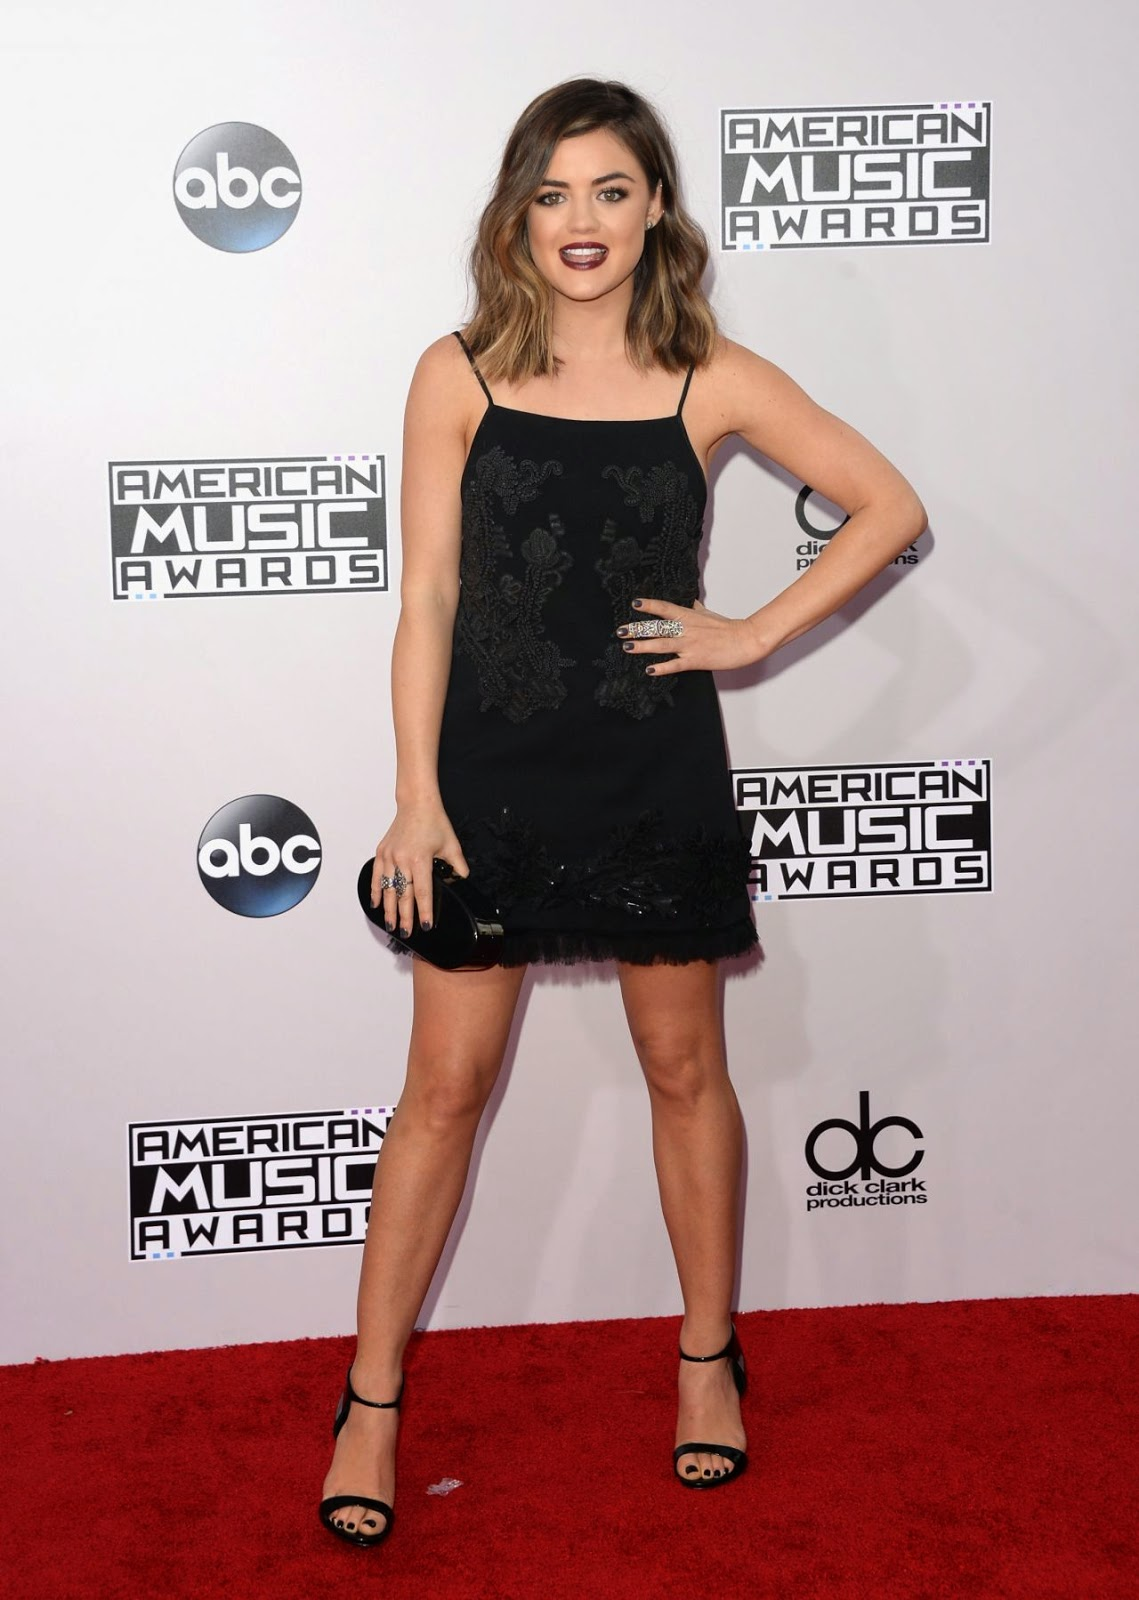 Lucy Hale wears an embellished black mini dress at the 2014 American Music Awards